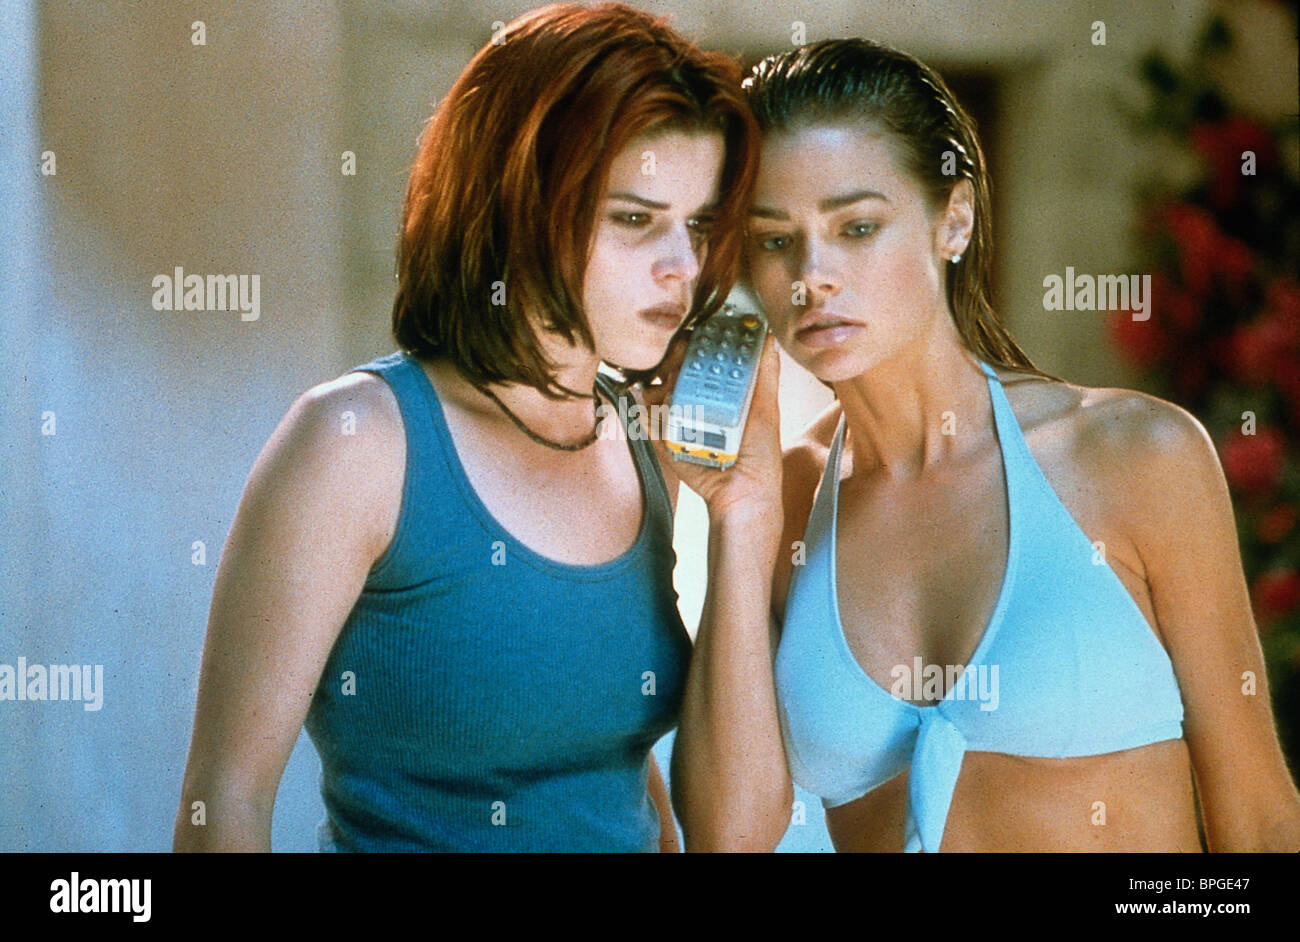 NEVE CAMPBELL DENISE RICHARDS WILD THINGS (1998) - Stock Image